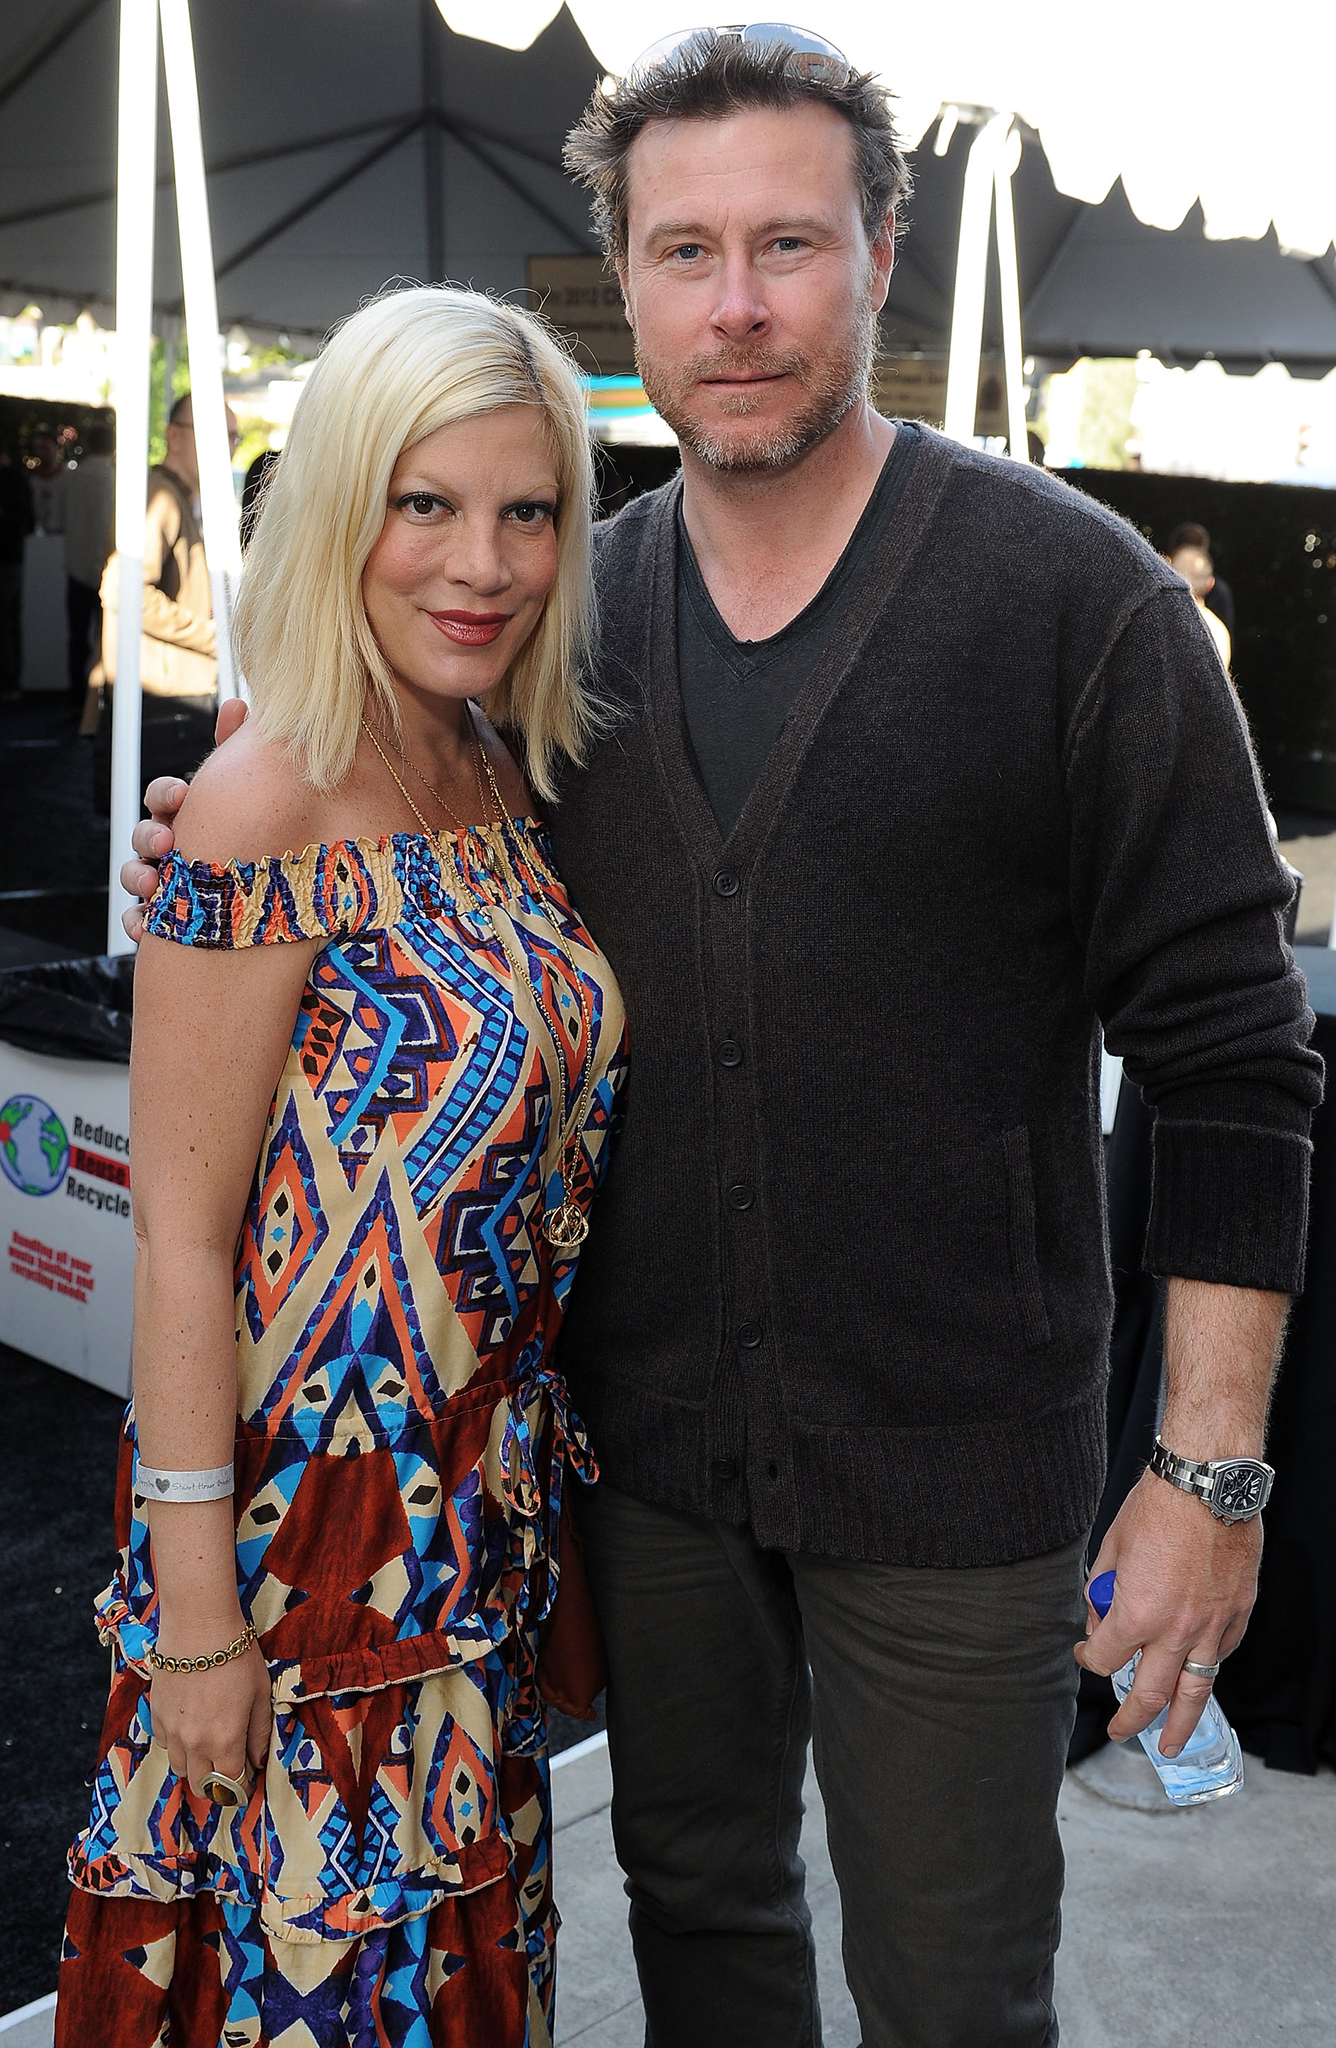 Tori Spelling and Dean McDermott (Getty Images)